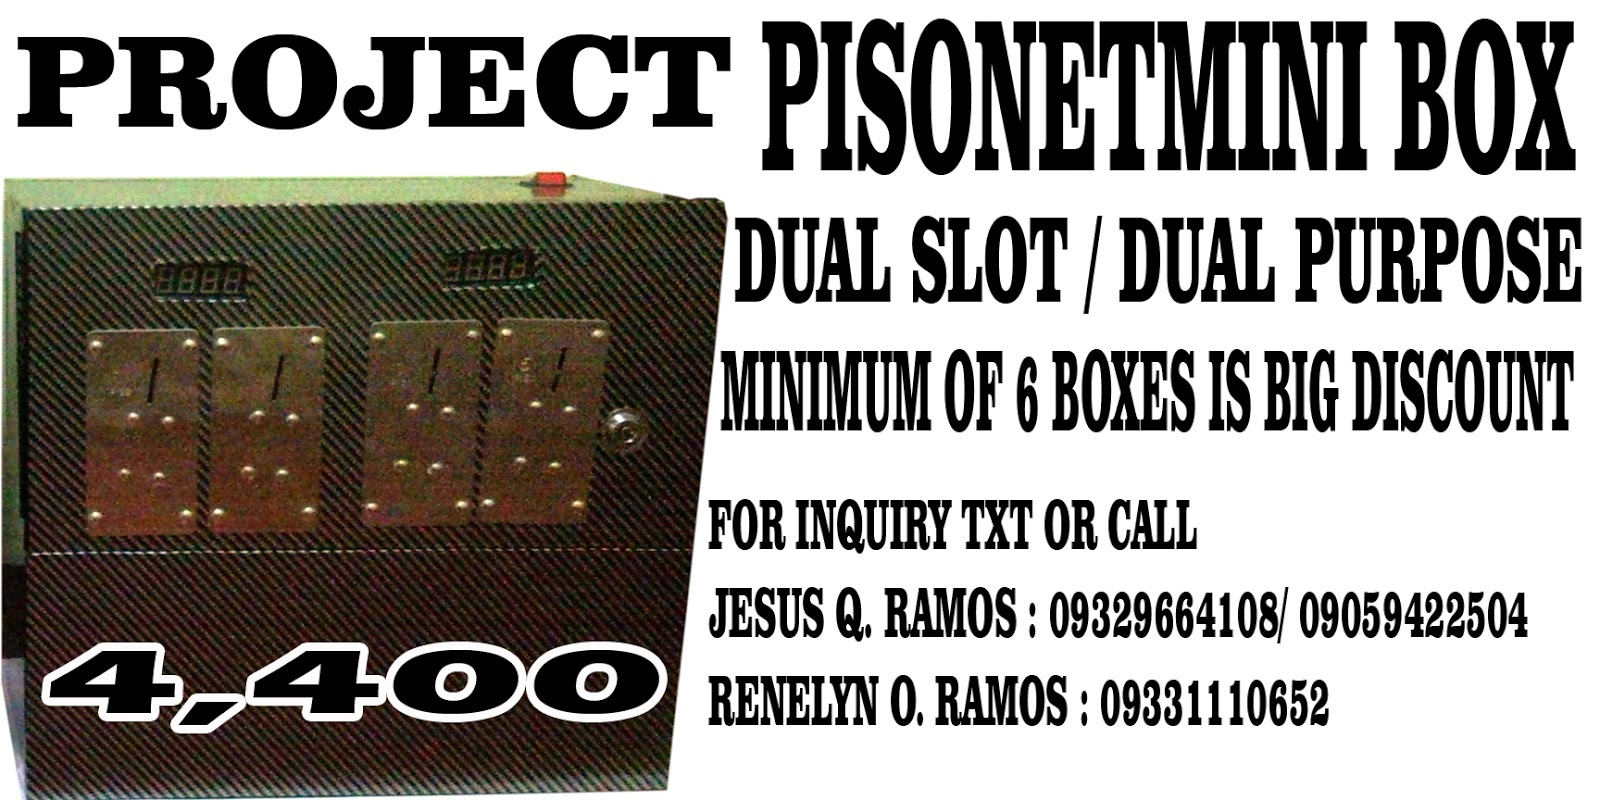 pisonet business plan sample